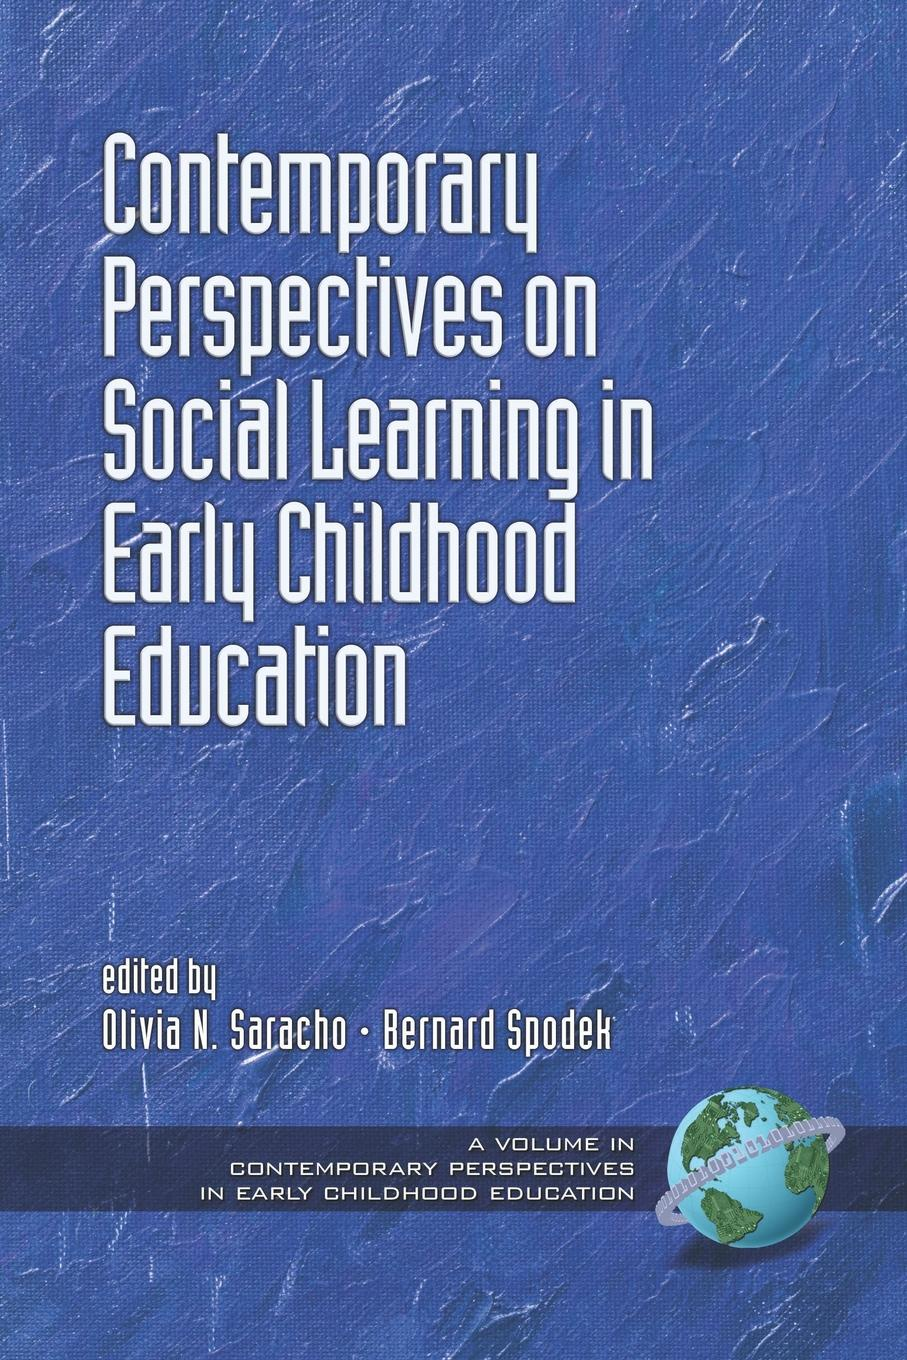 Contemporary Perspectives on Social Learning in Early Childhood Education (PB) meghan manfra mcglinn the wiley handbook of social studies research